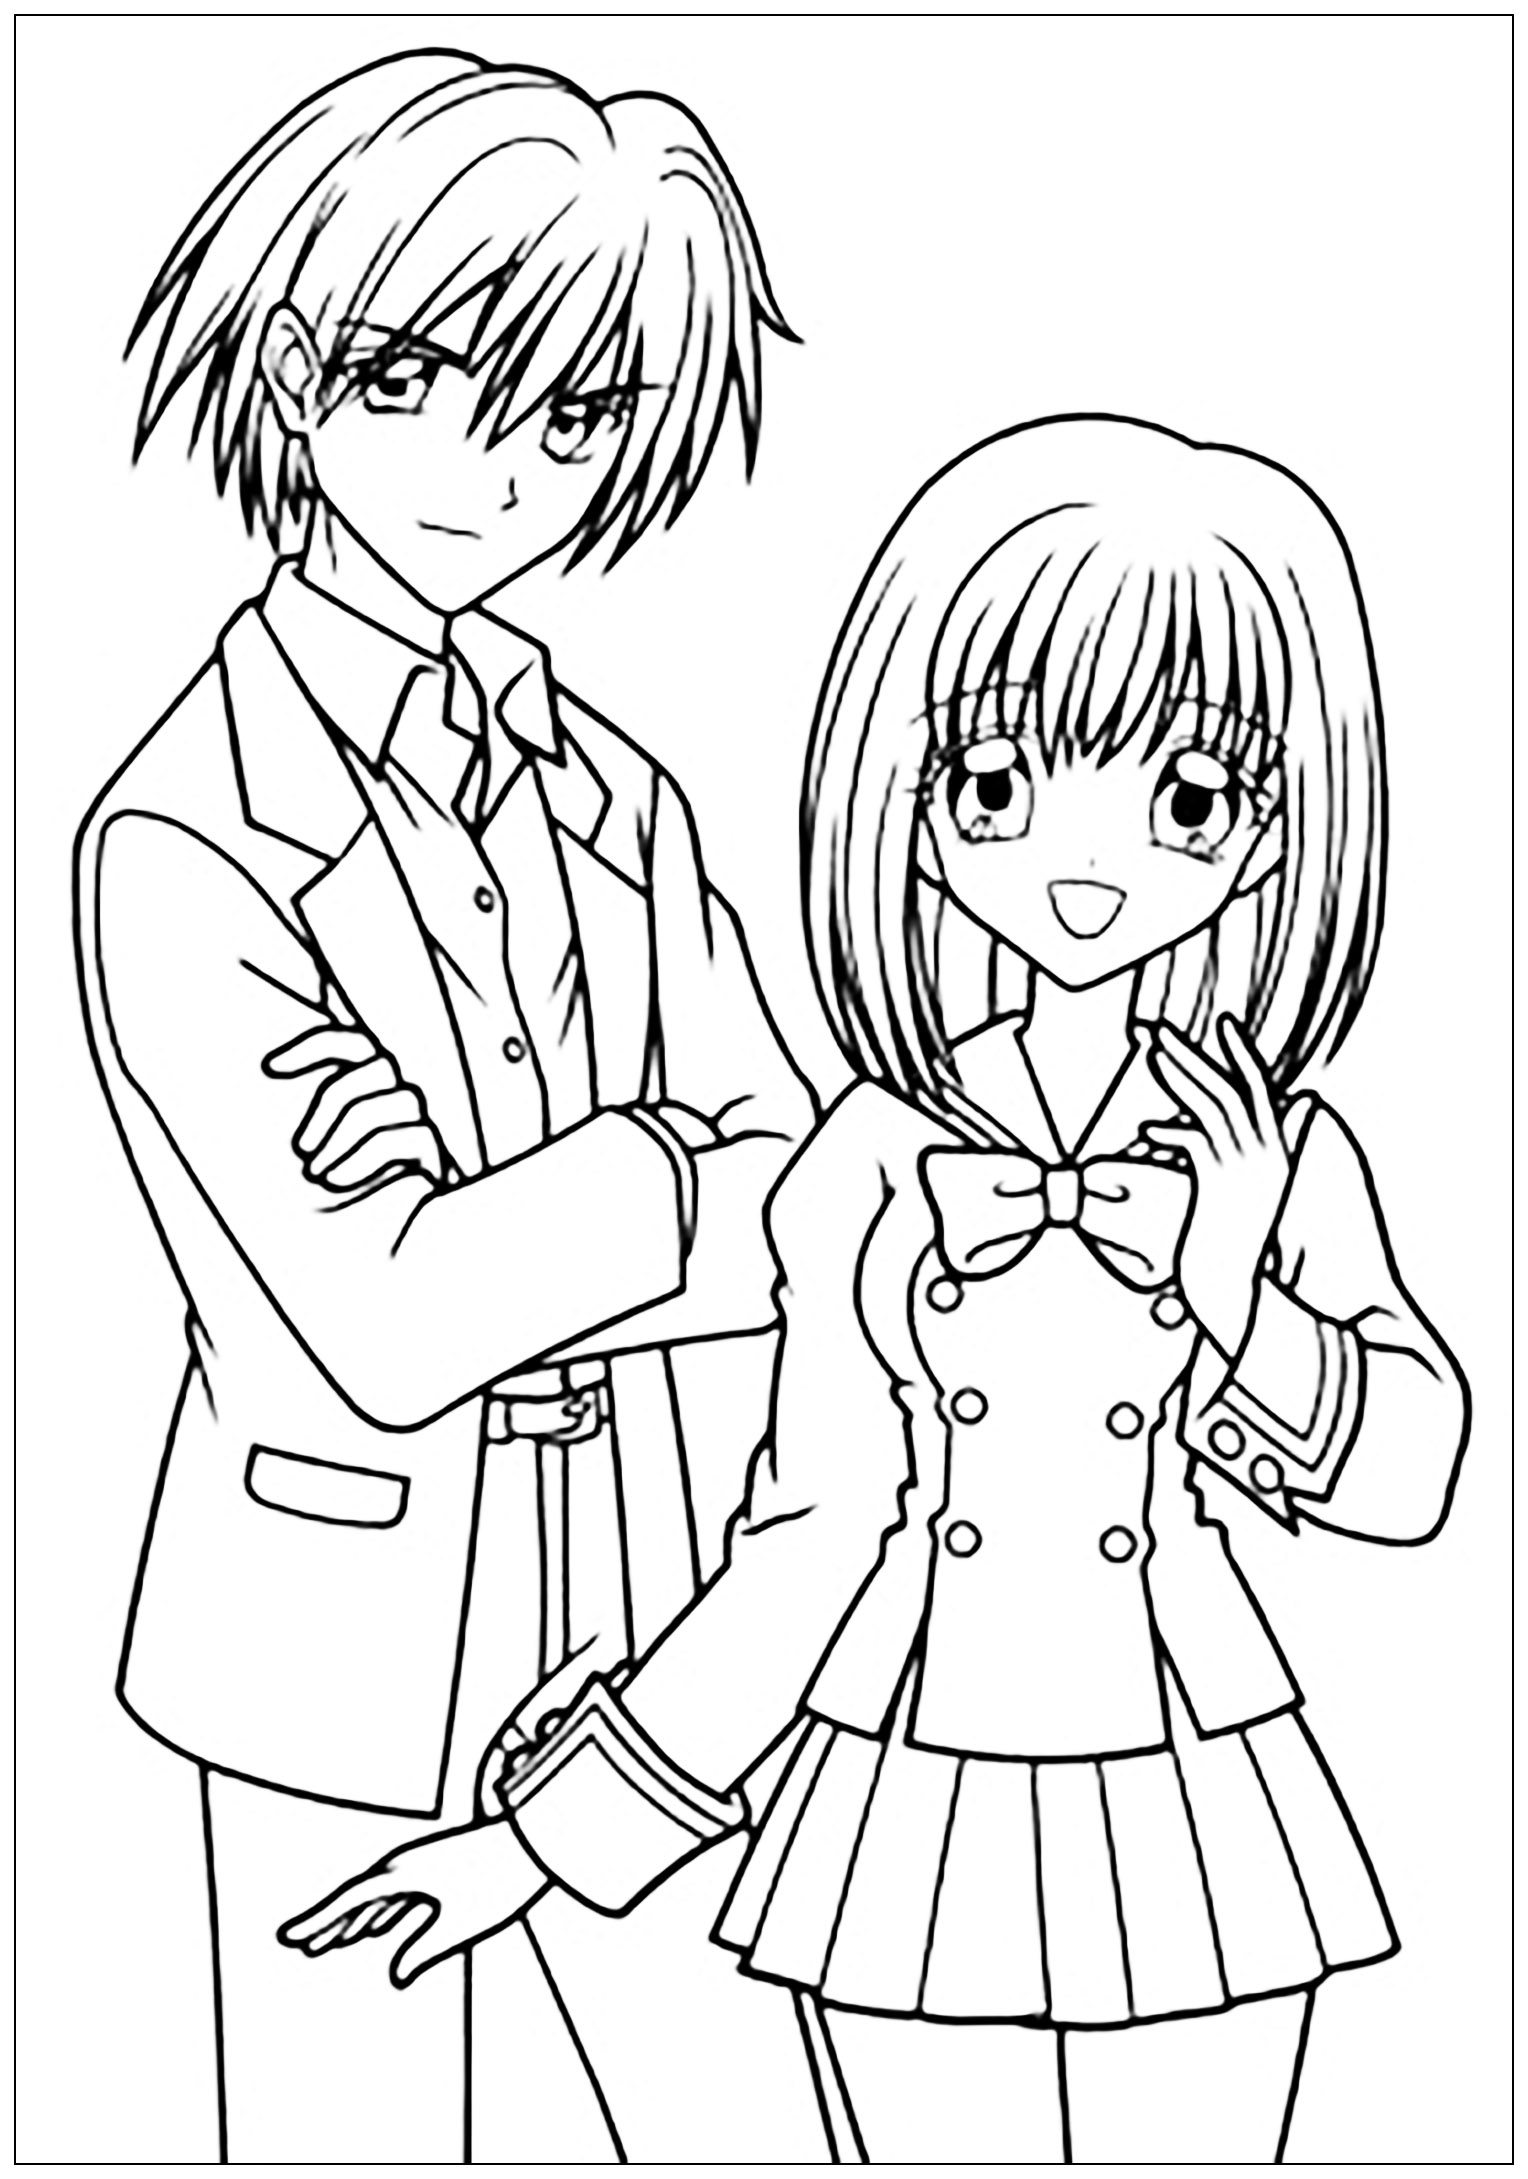 coloring pages anime school girl schoolgirl anime colouring pages tô màu pinterest school coloring pages anime girl